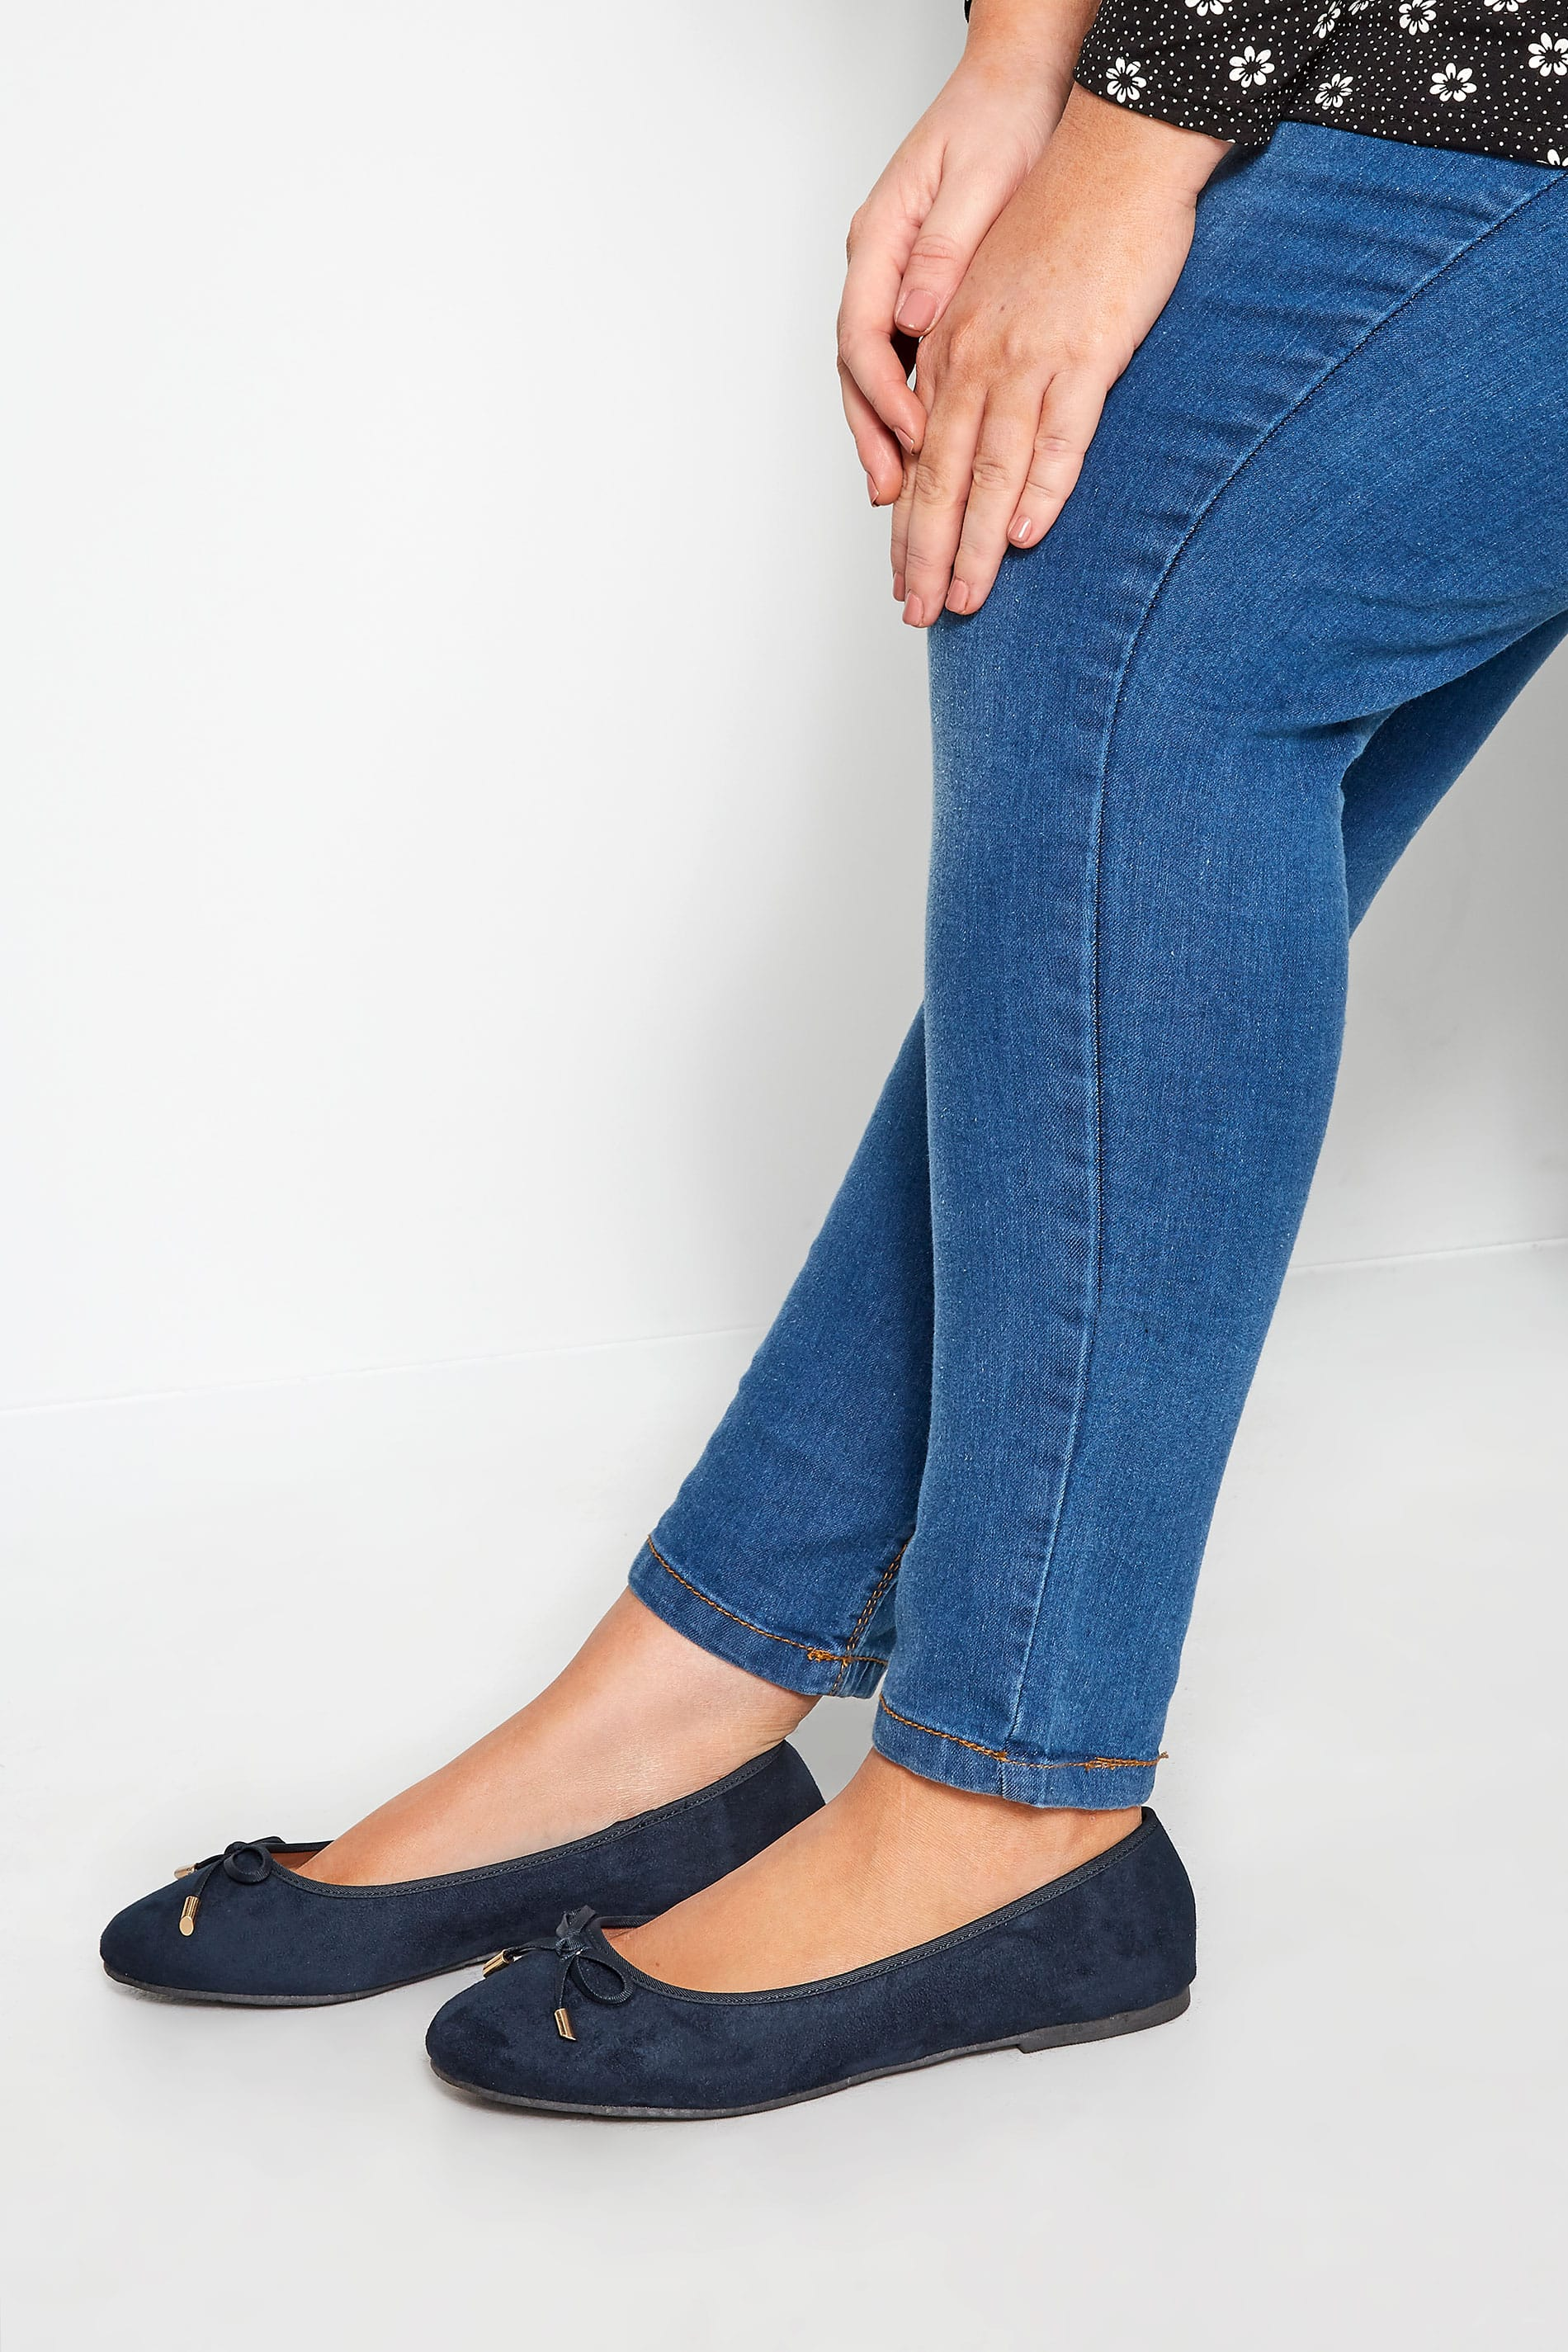 Navy Ballerina Pumps In Extra Wide Fit